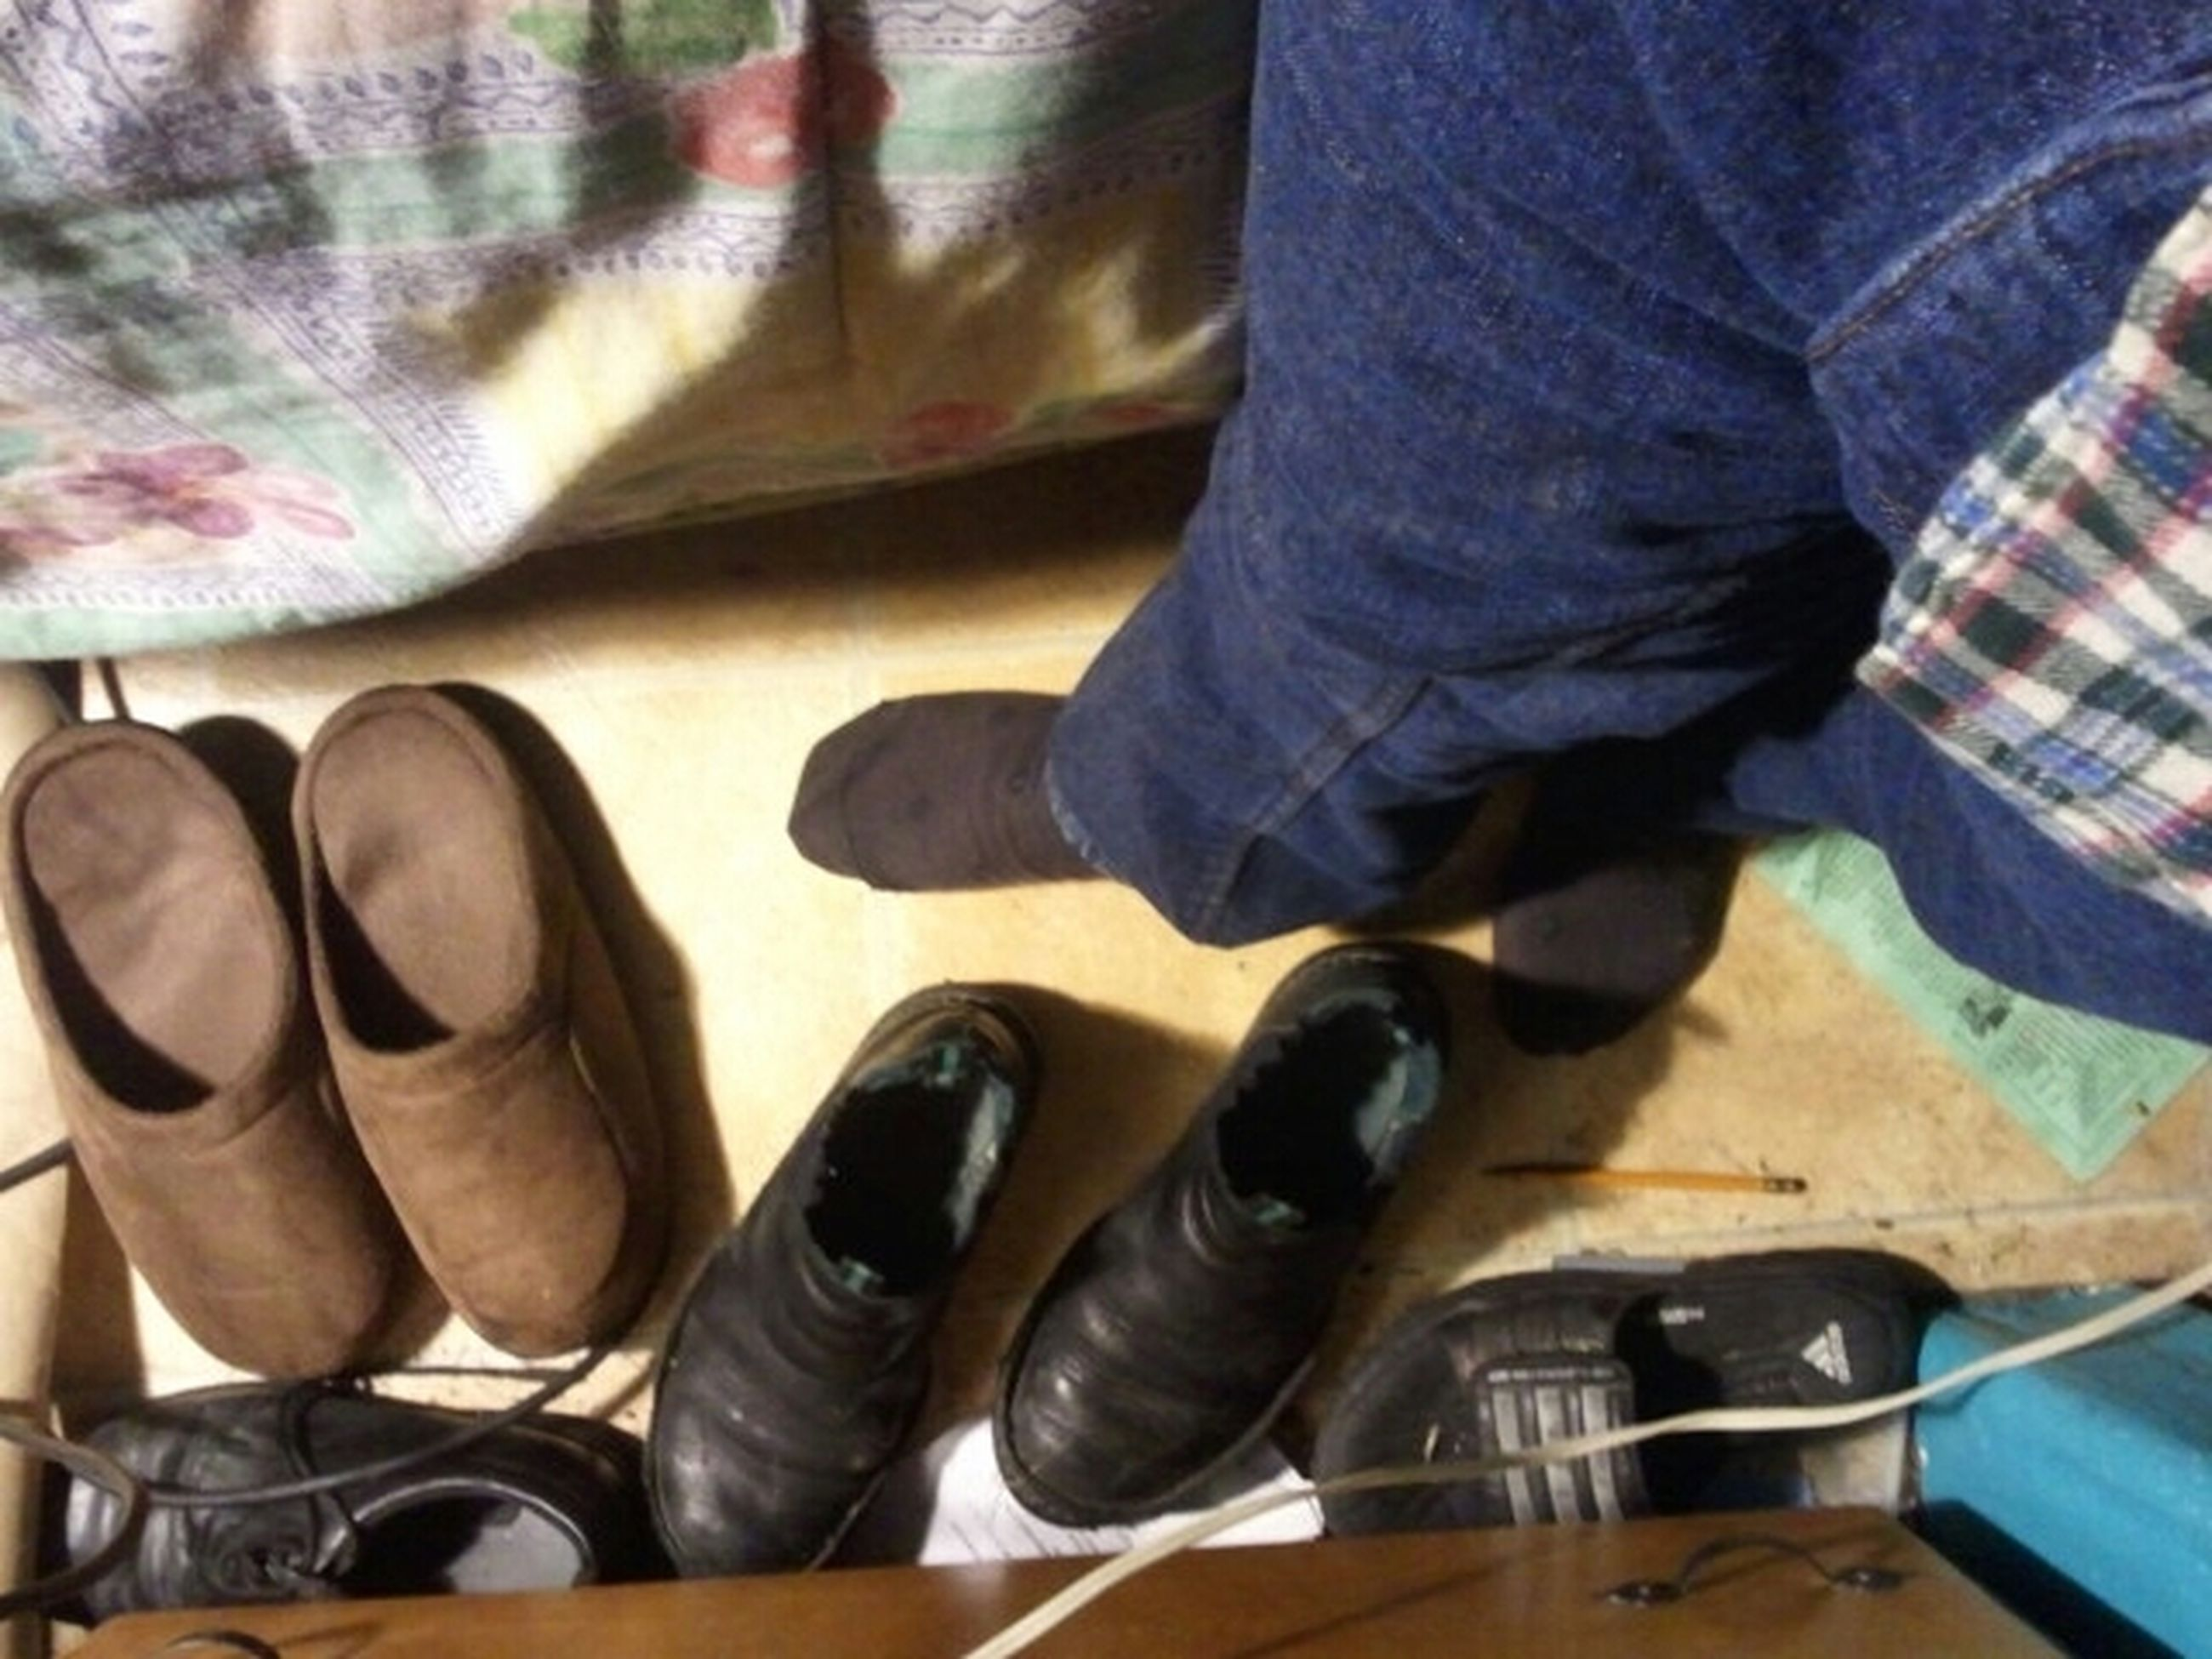 indoors, low section, person, shoe, jeans, footwear, men, lifestyles, high angle view, human foot, sitting, casual clothing, standing, canvas shoe, leisure activity, relaxation, personal perspective